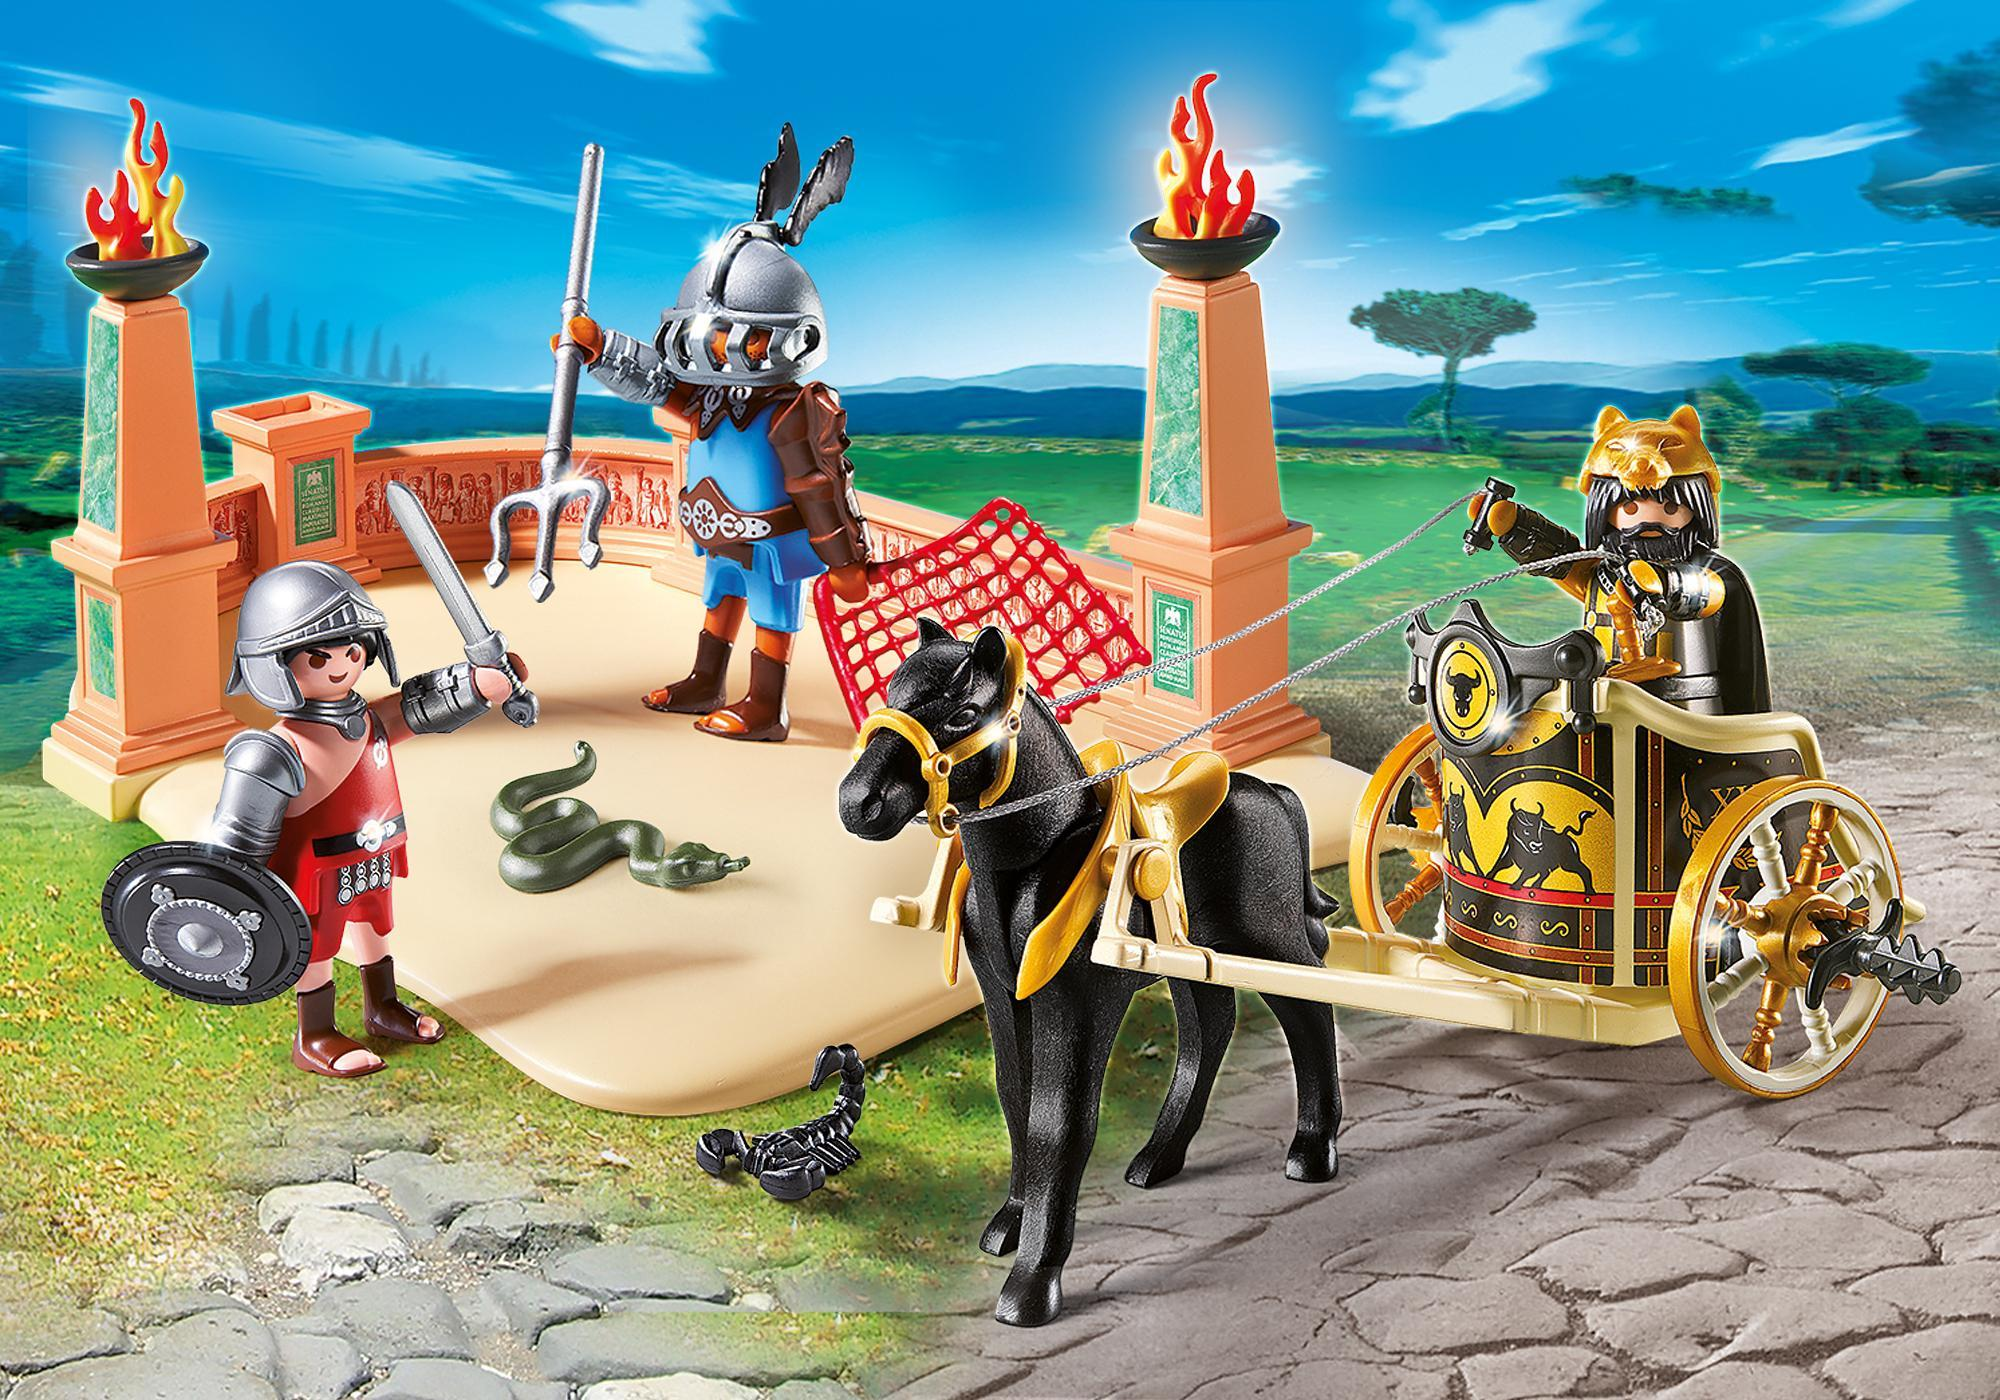 http://media.playmobil.com/i/playmobil/6868_product_detail